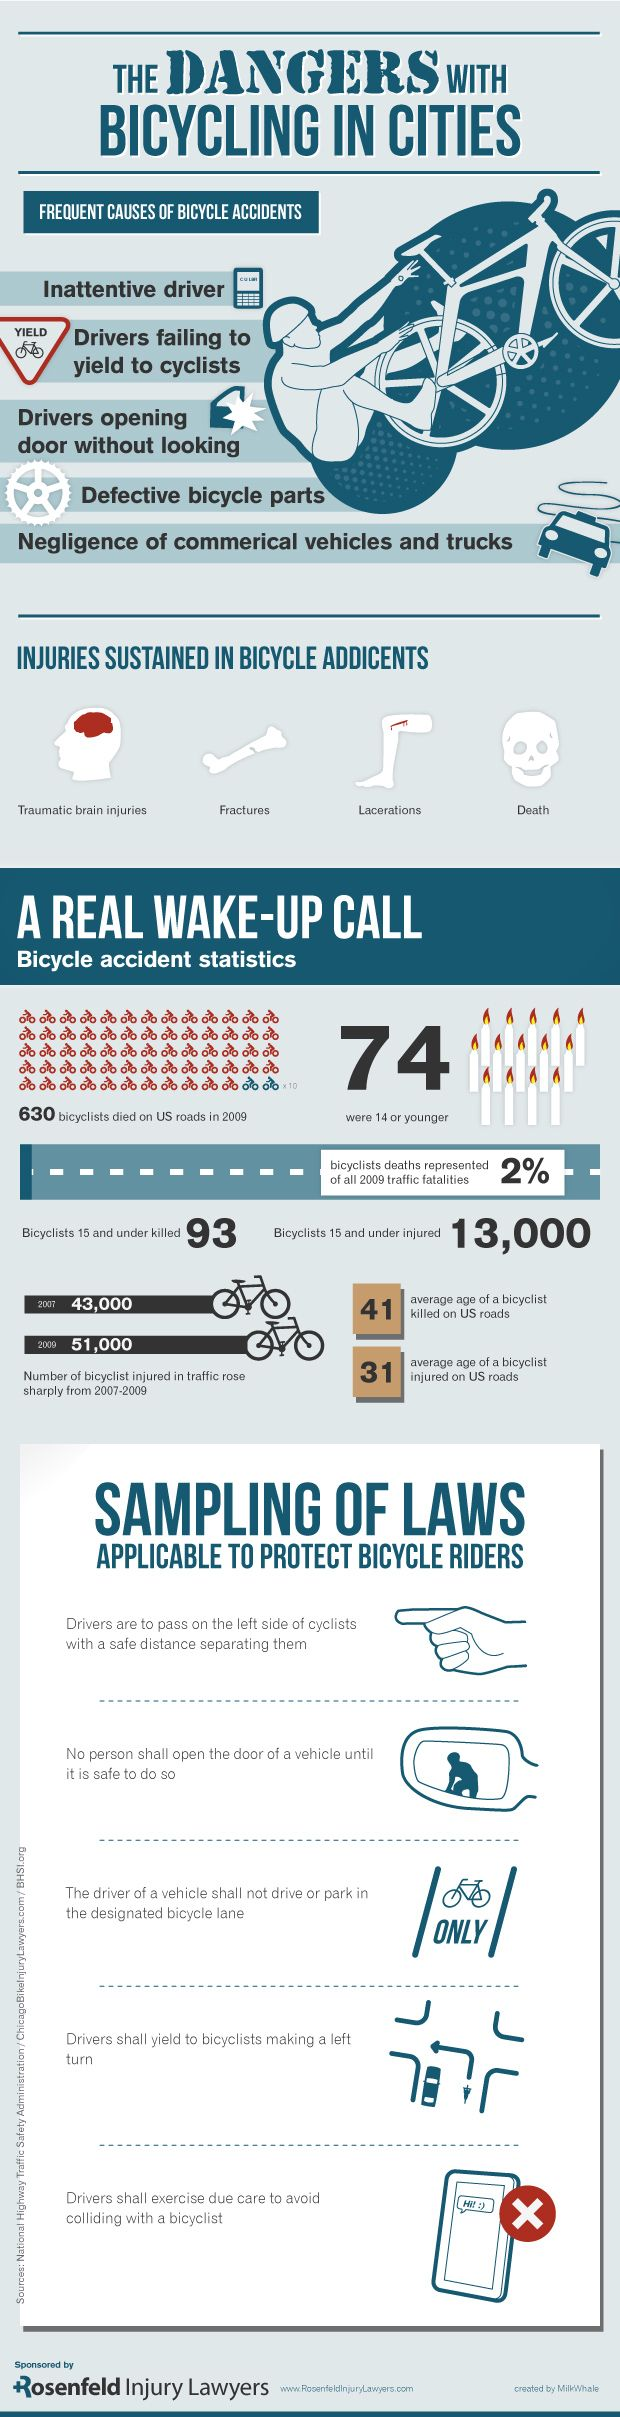 The Dangers with Bicycling in Cities [Infographic] — Shutterbug Seshat